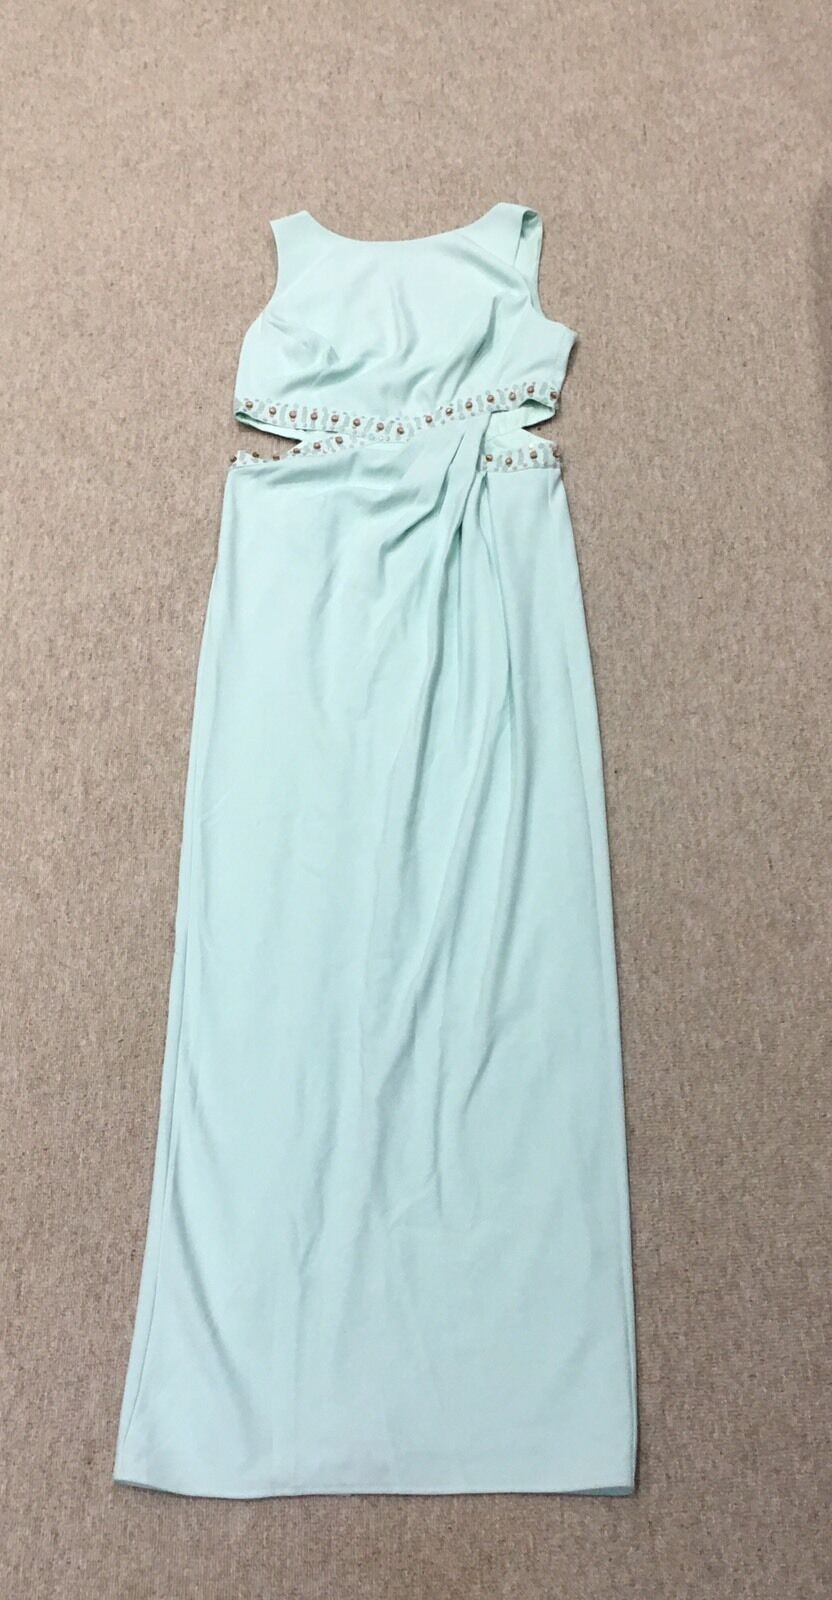 New Coast Mint Cutout Dress UK14 fits UK12